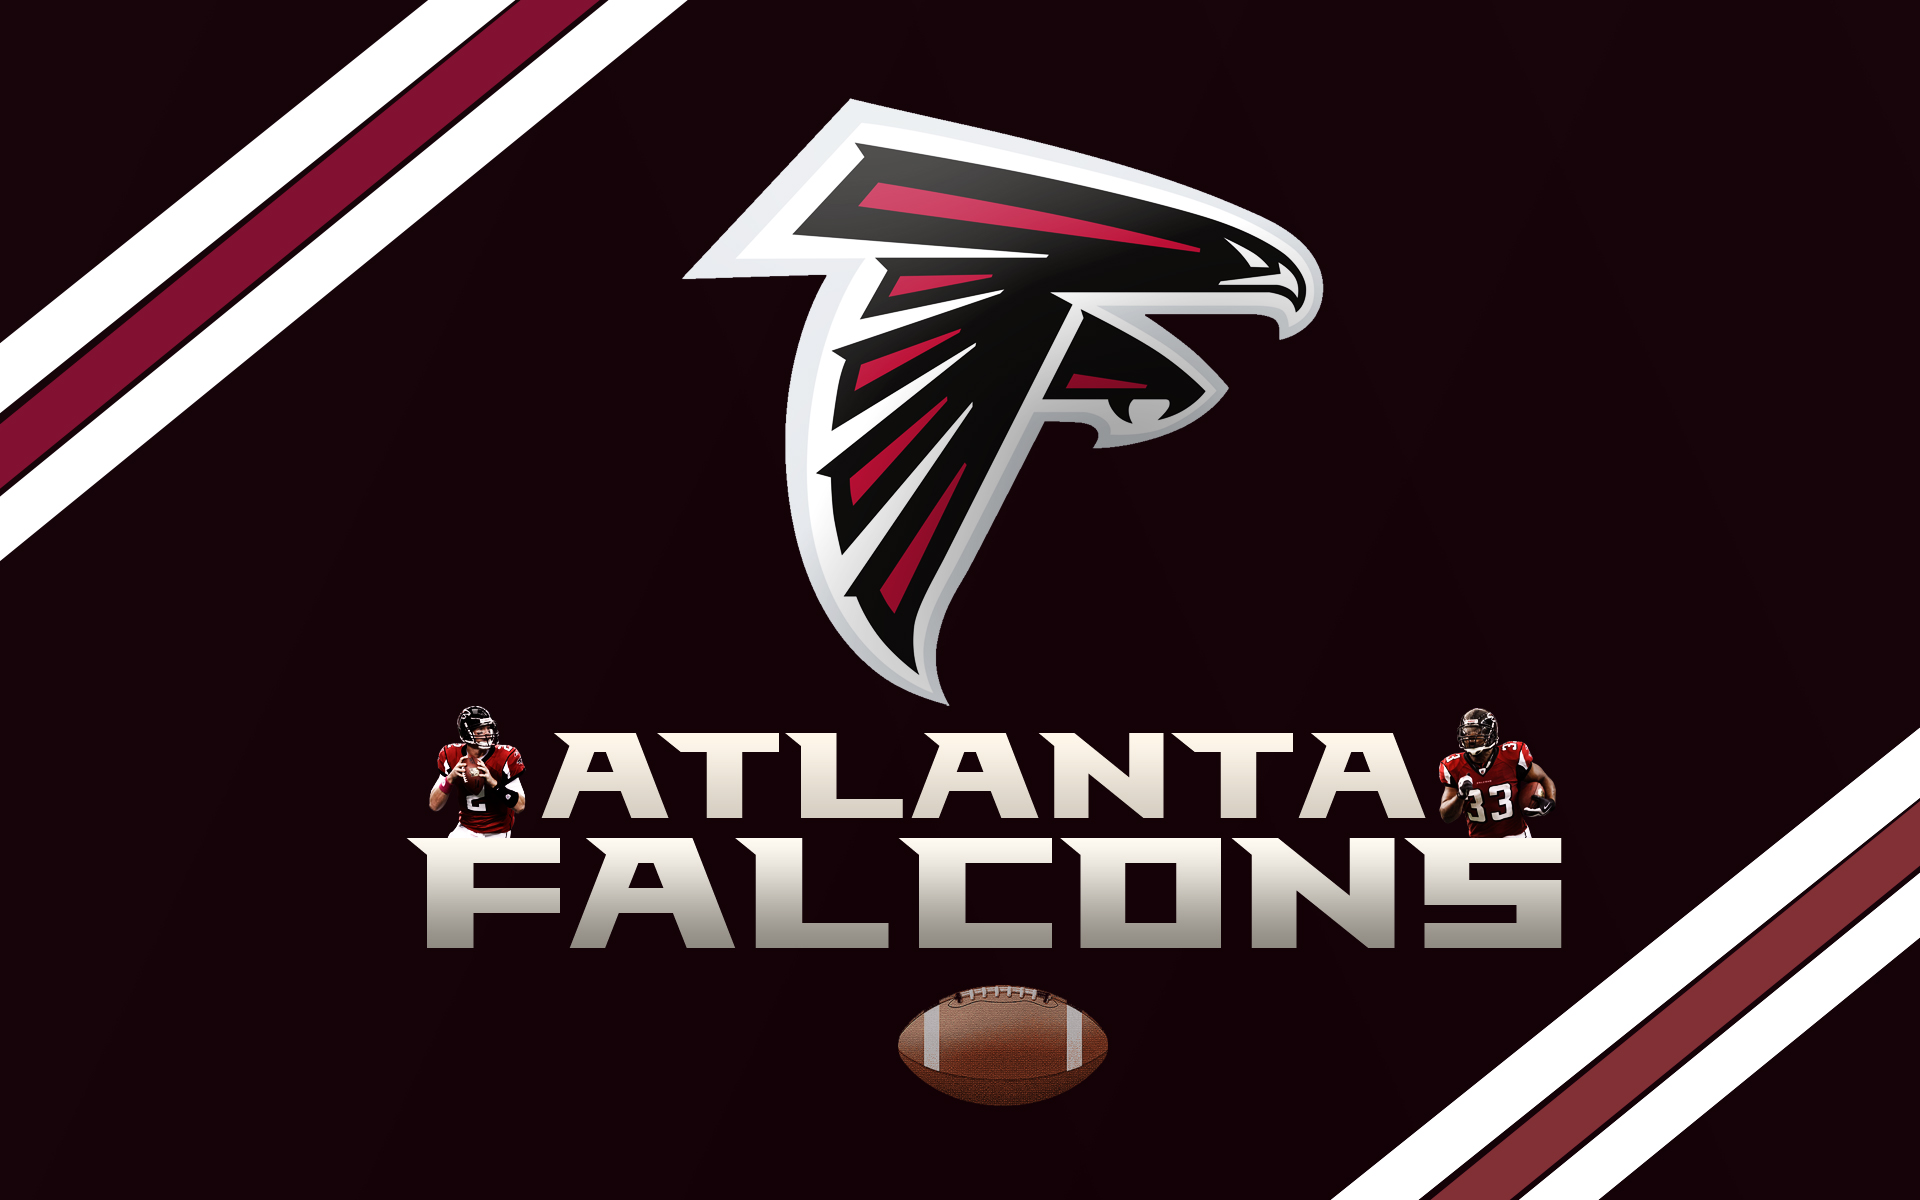 Falcons Wallpaper: 8 HD Atlanta Falcons Wallpapers